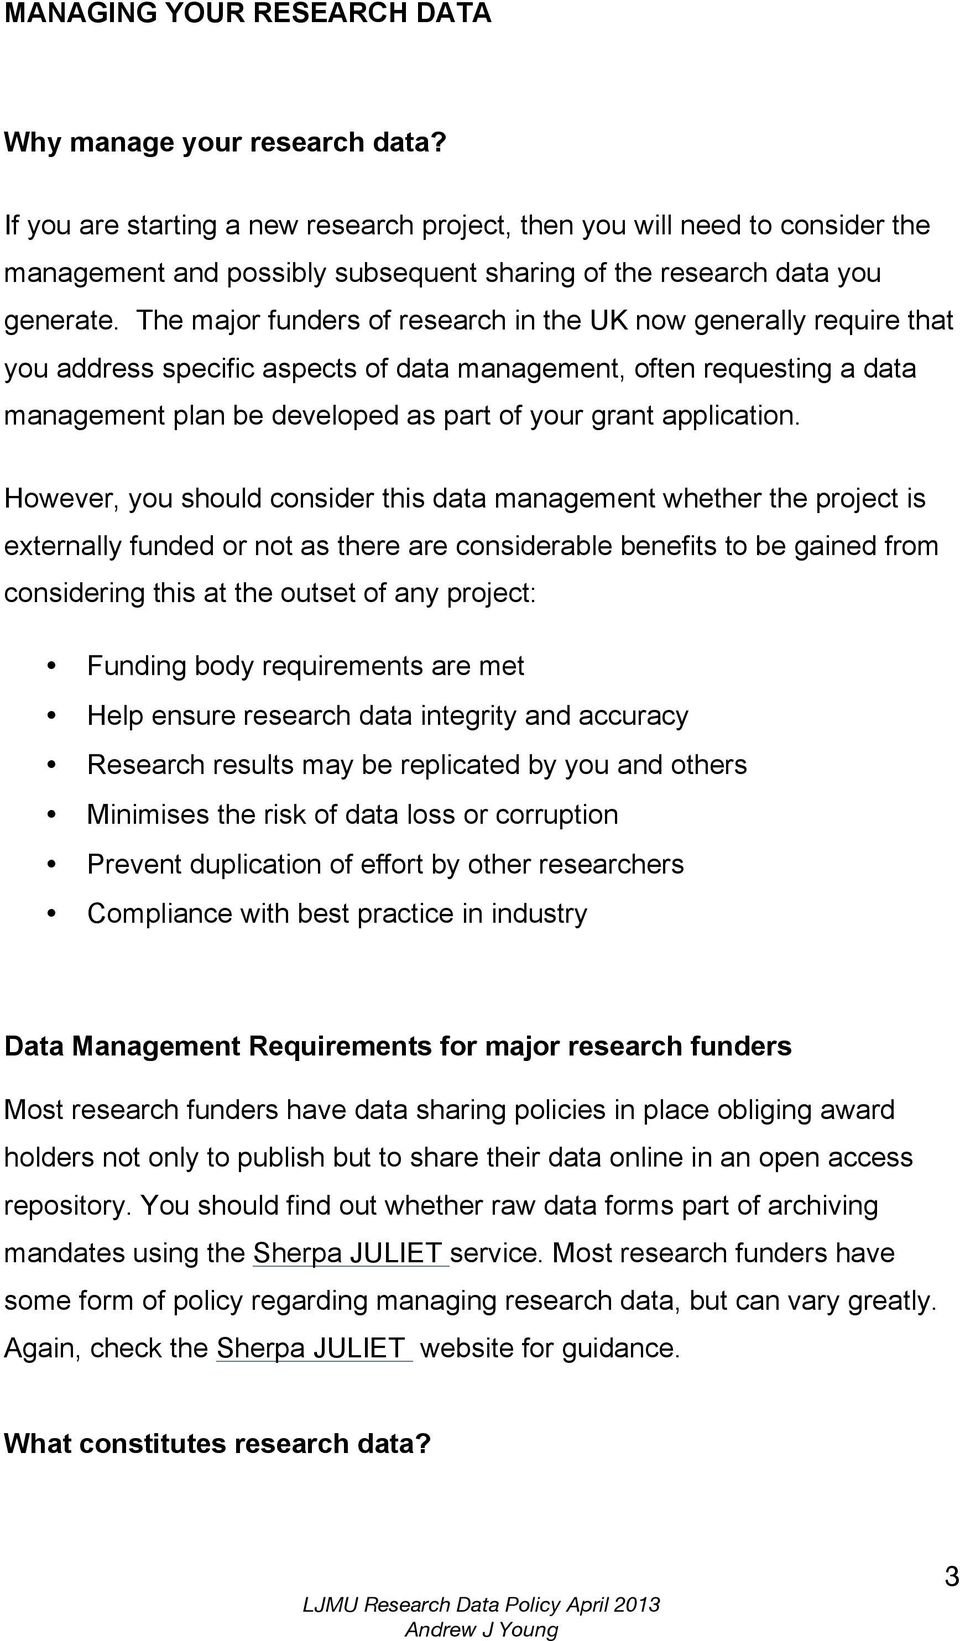 The major funders of research in the UK now generally require that you address specific aspects of data management, often requesting a data management plan be developed as part of your grant